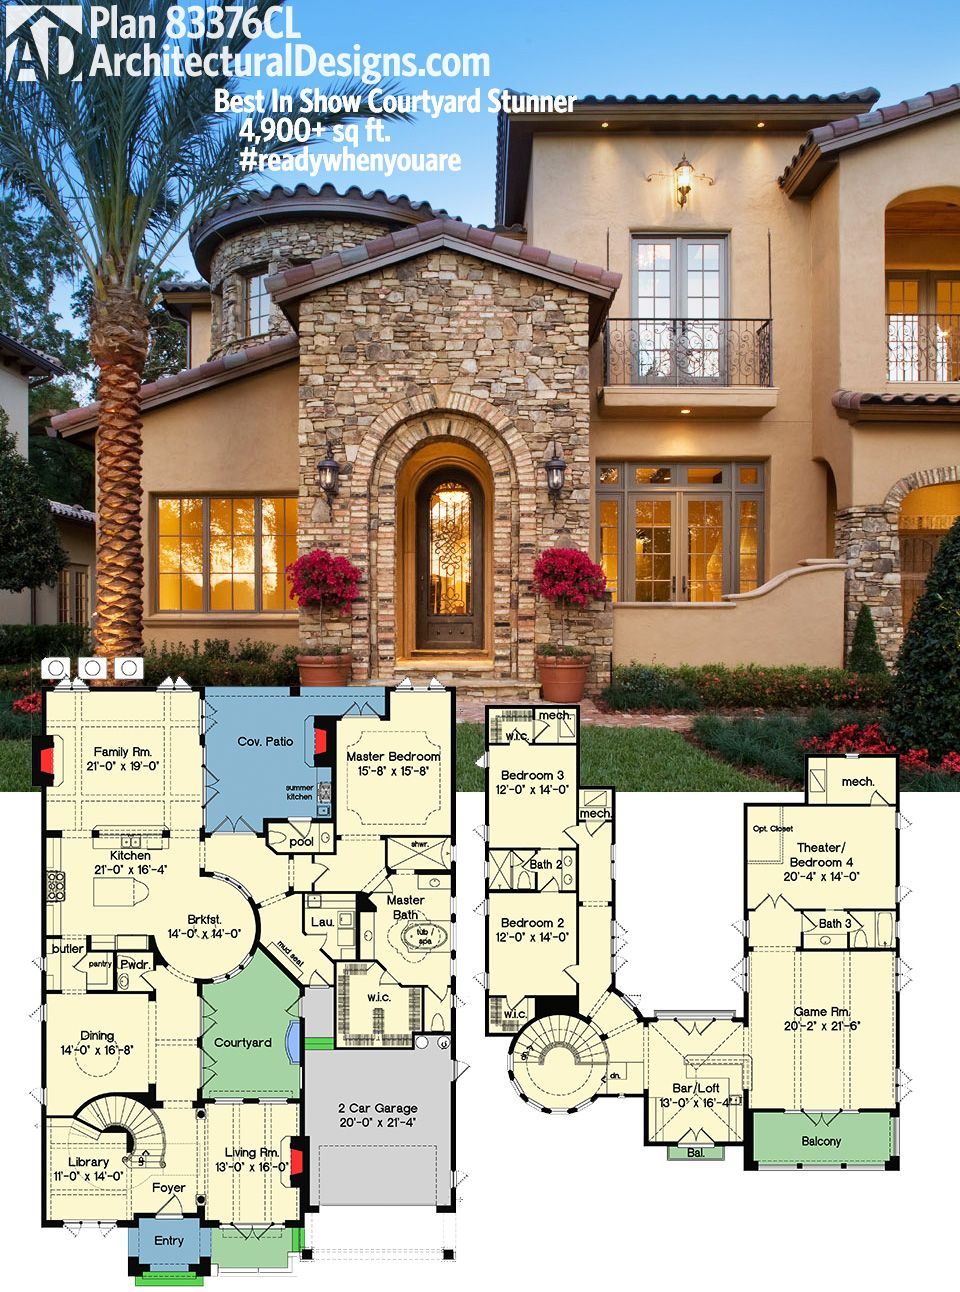 Plan 83376cl Best In Show Courtyard Stunner Luxury House Plans Dream House Plans House Plans